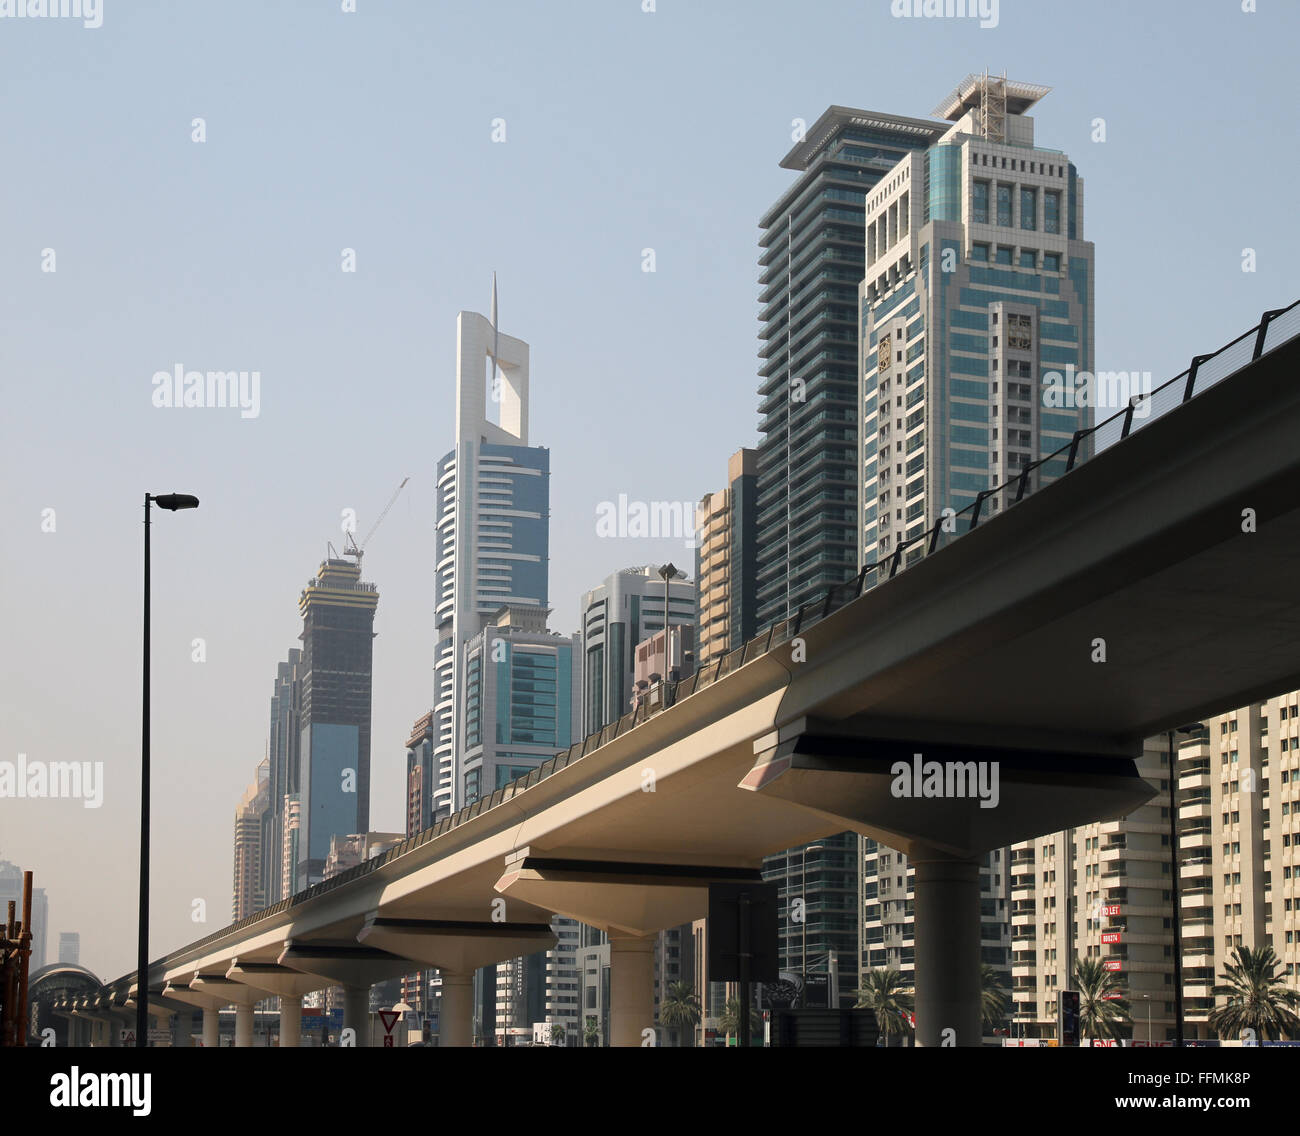 A view of Dubai, its Buildings and Metro - Stock Image